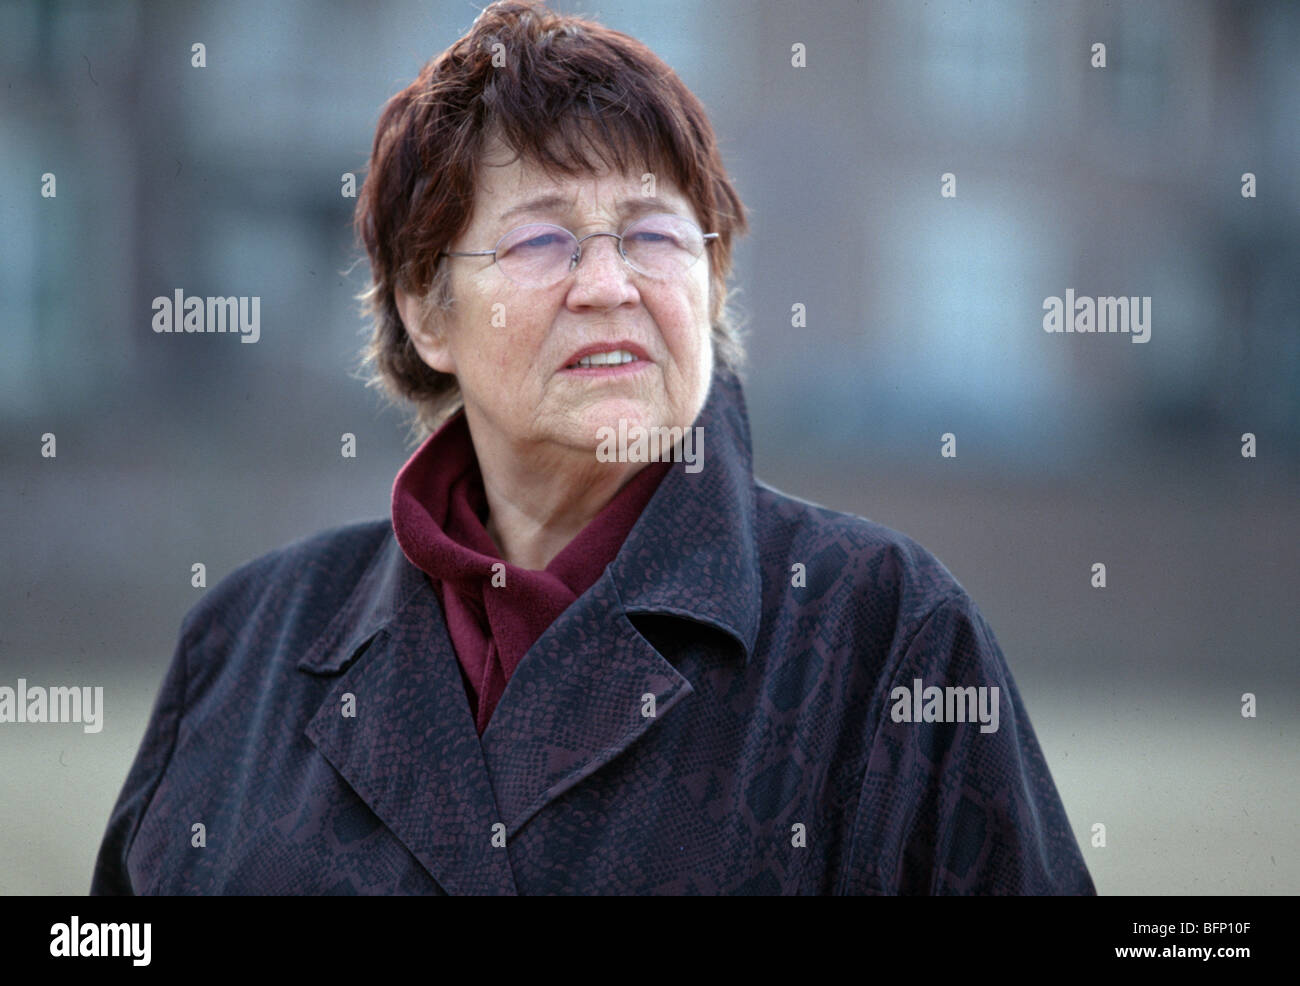 Worried pensioner looking up , woman senior thinking - SerieCVS500200d - Stock Image